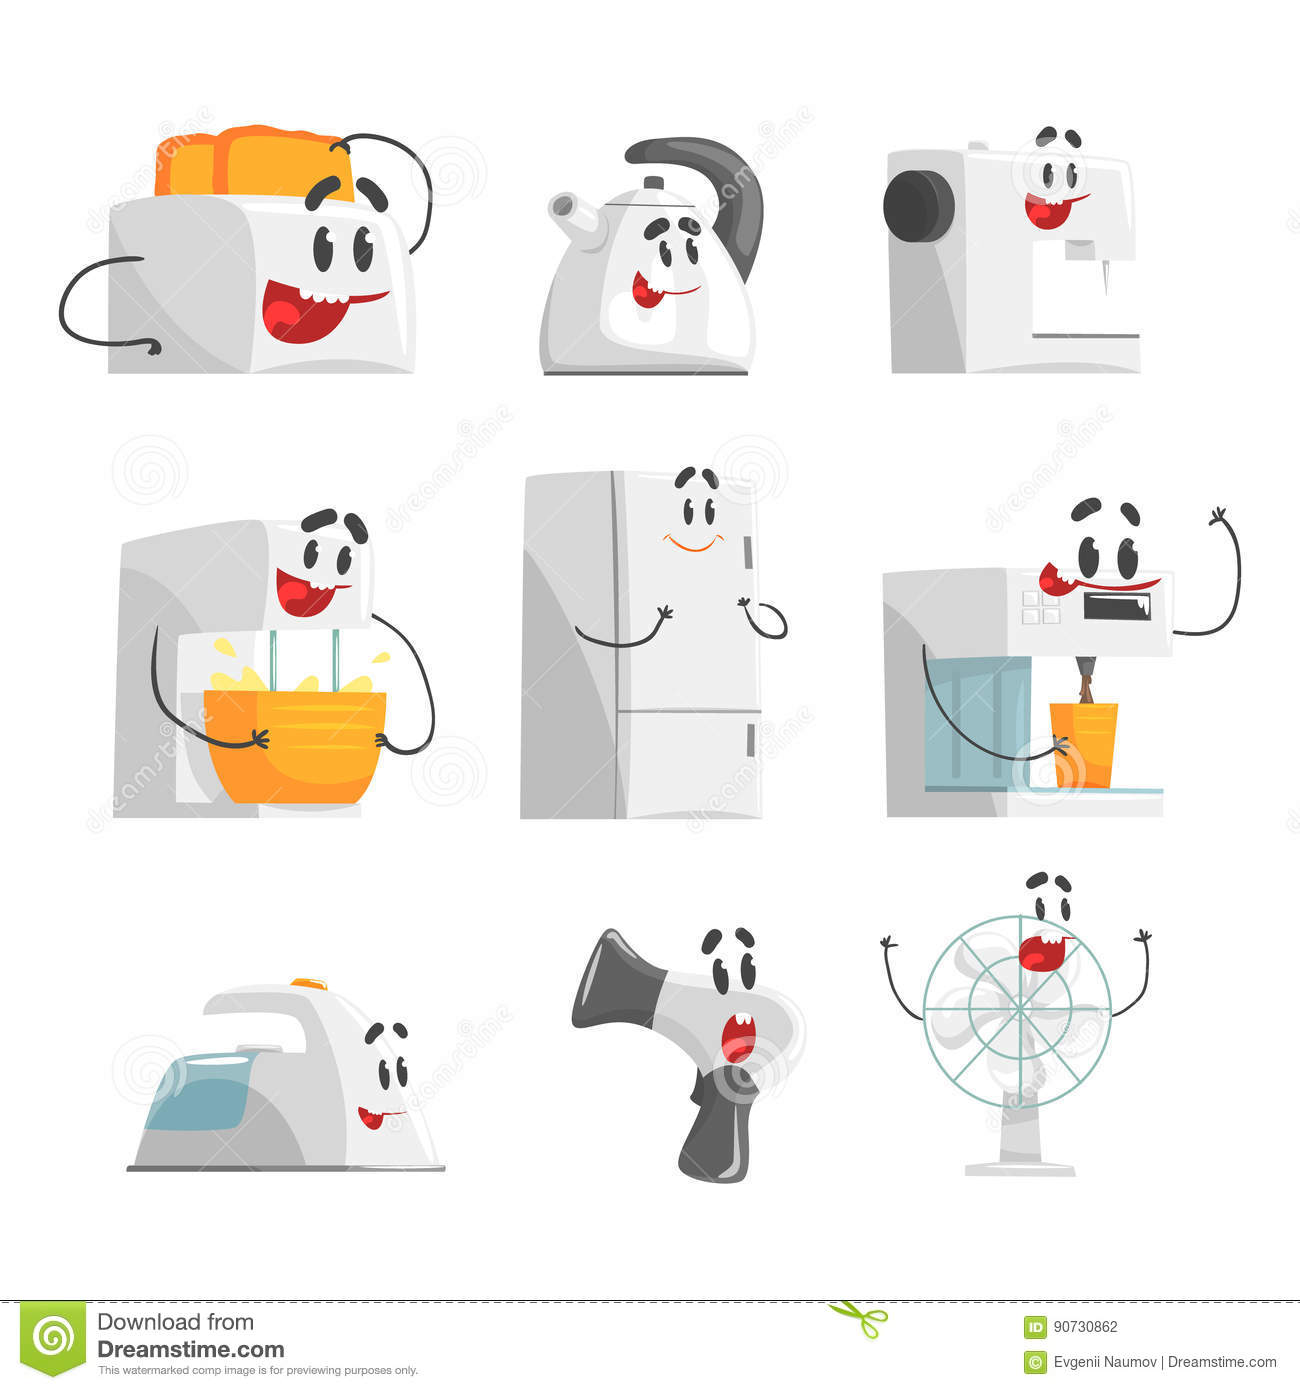 Appliances cartoons illustrations vector stock images for Household electrical design